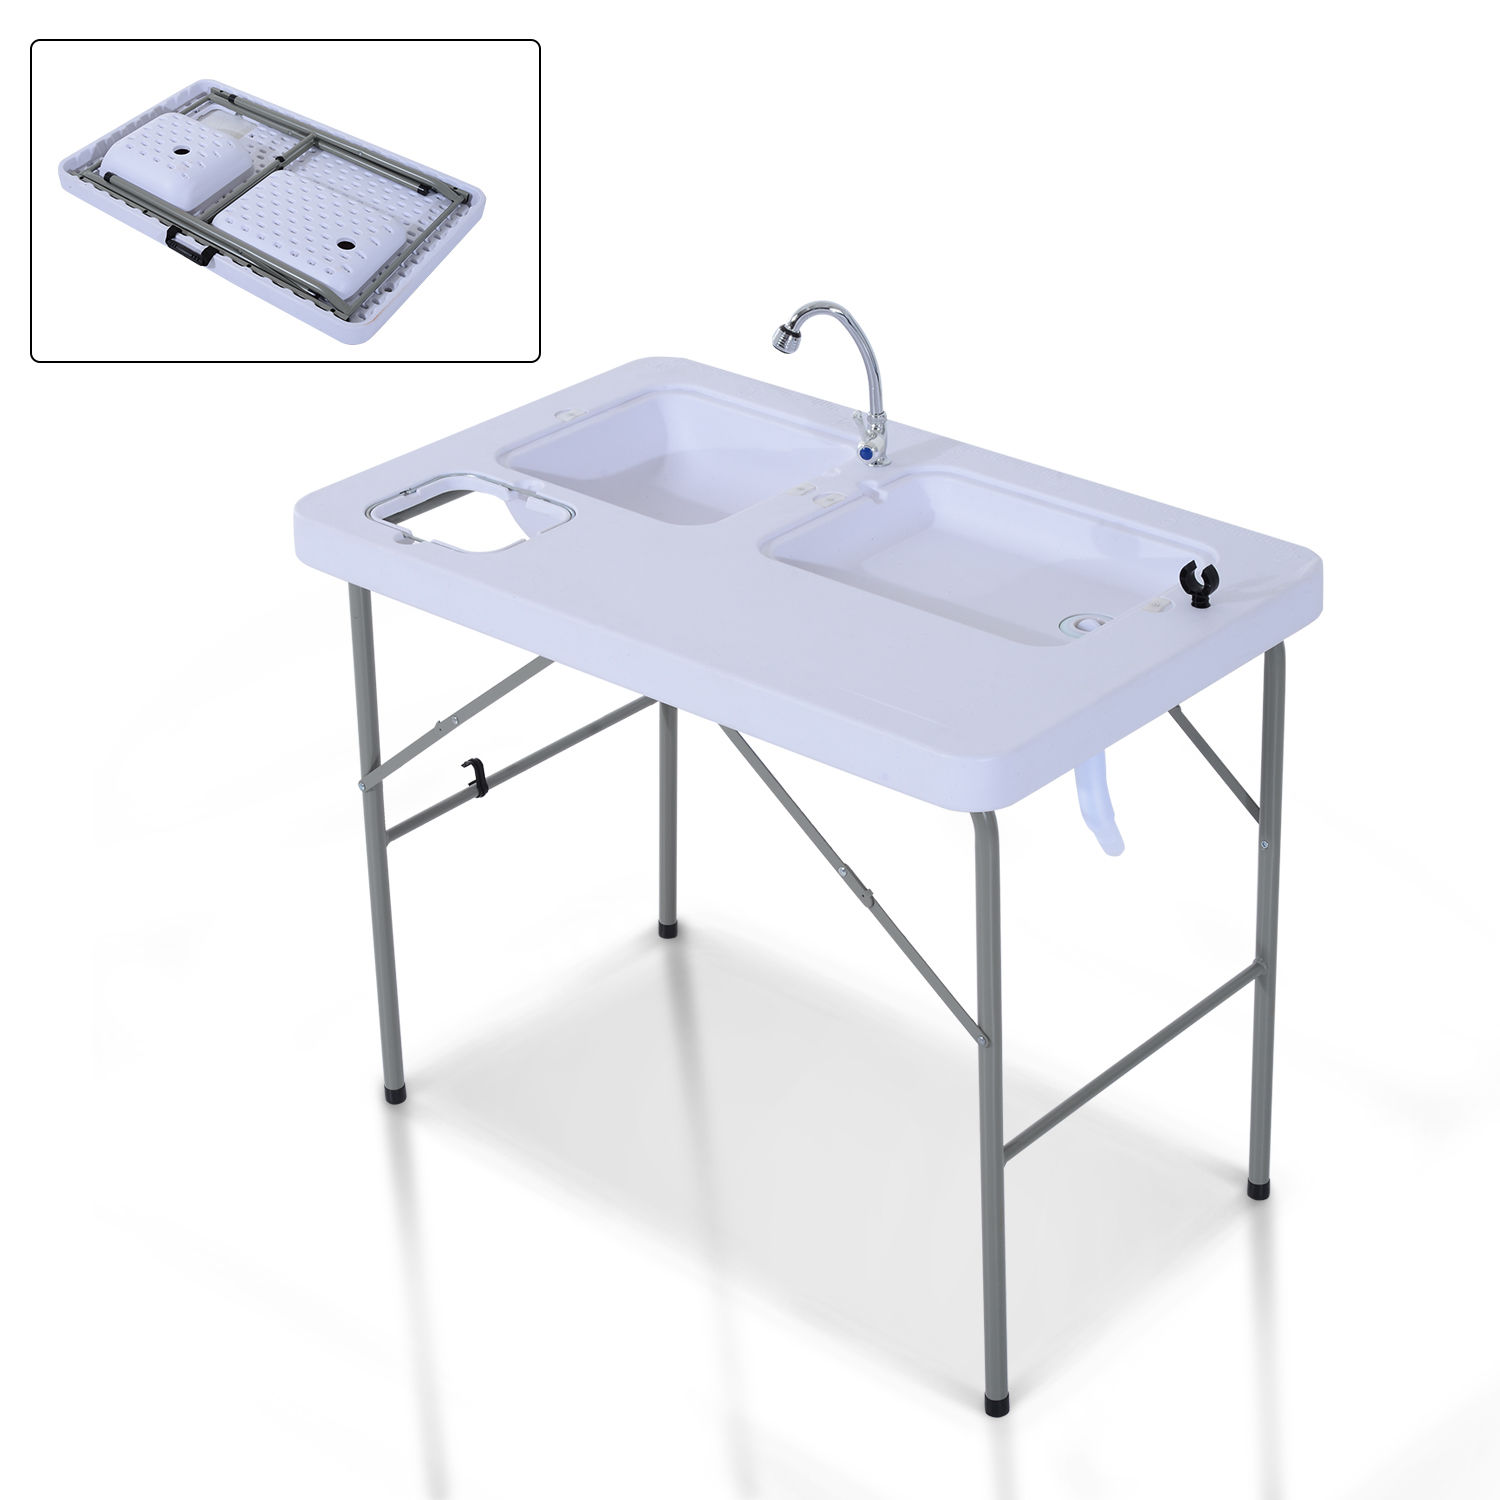 Details about Portable Folding Fish Cleaning Cutting Table Outdoor Camping  Kitchen Faucet Sink